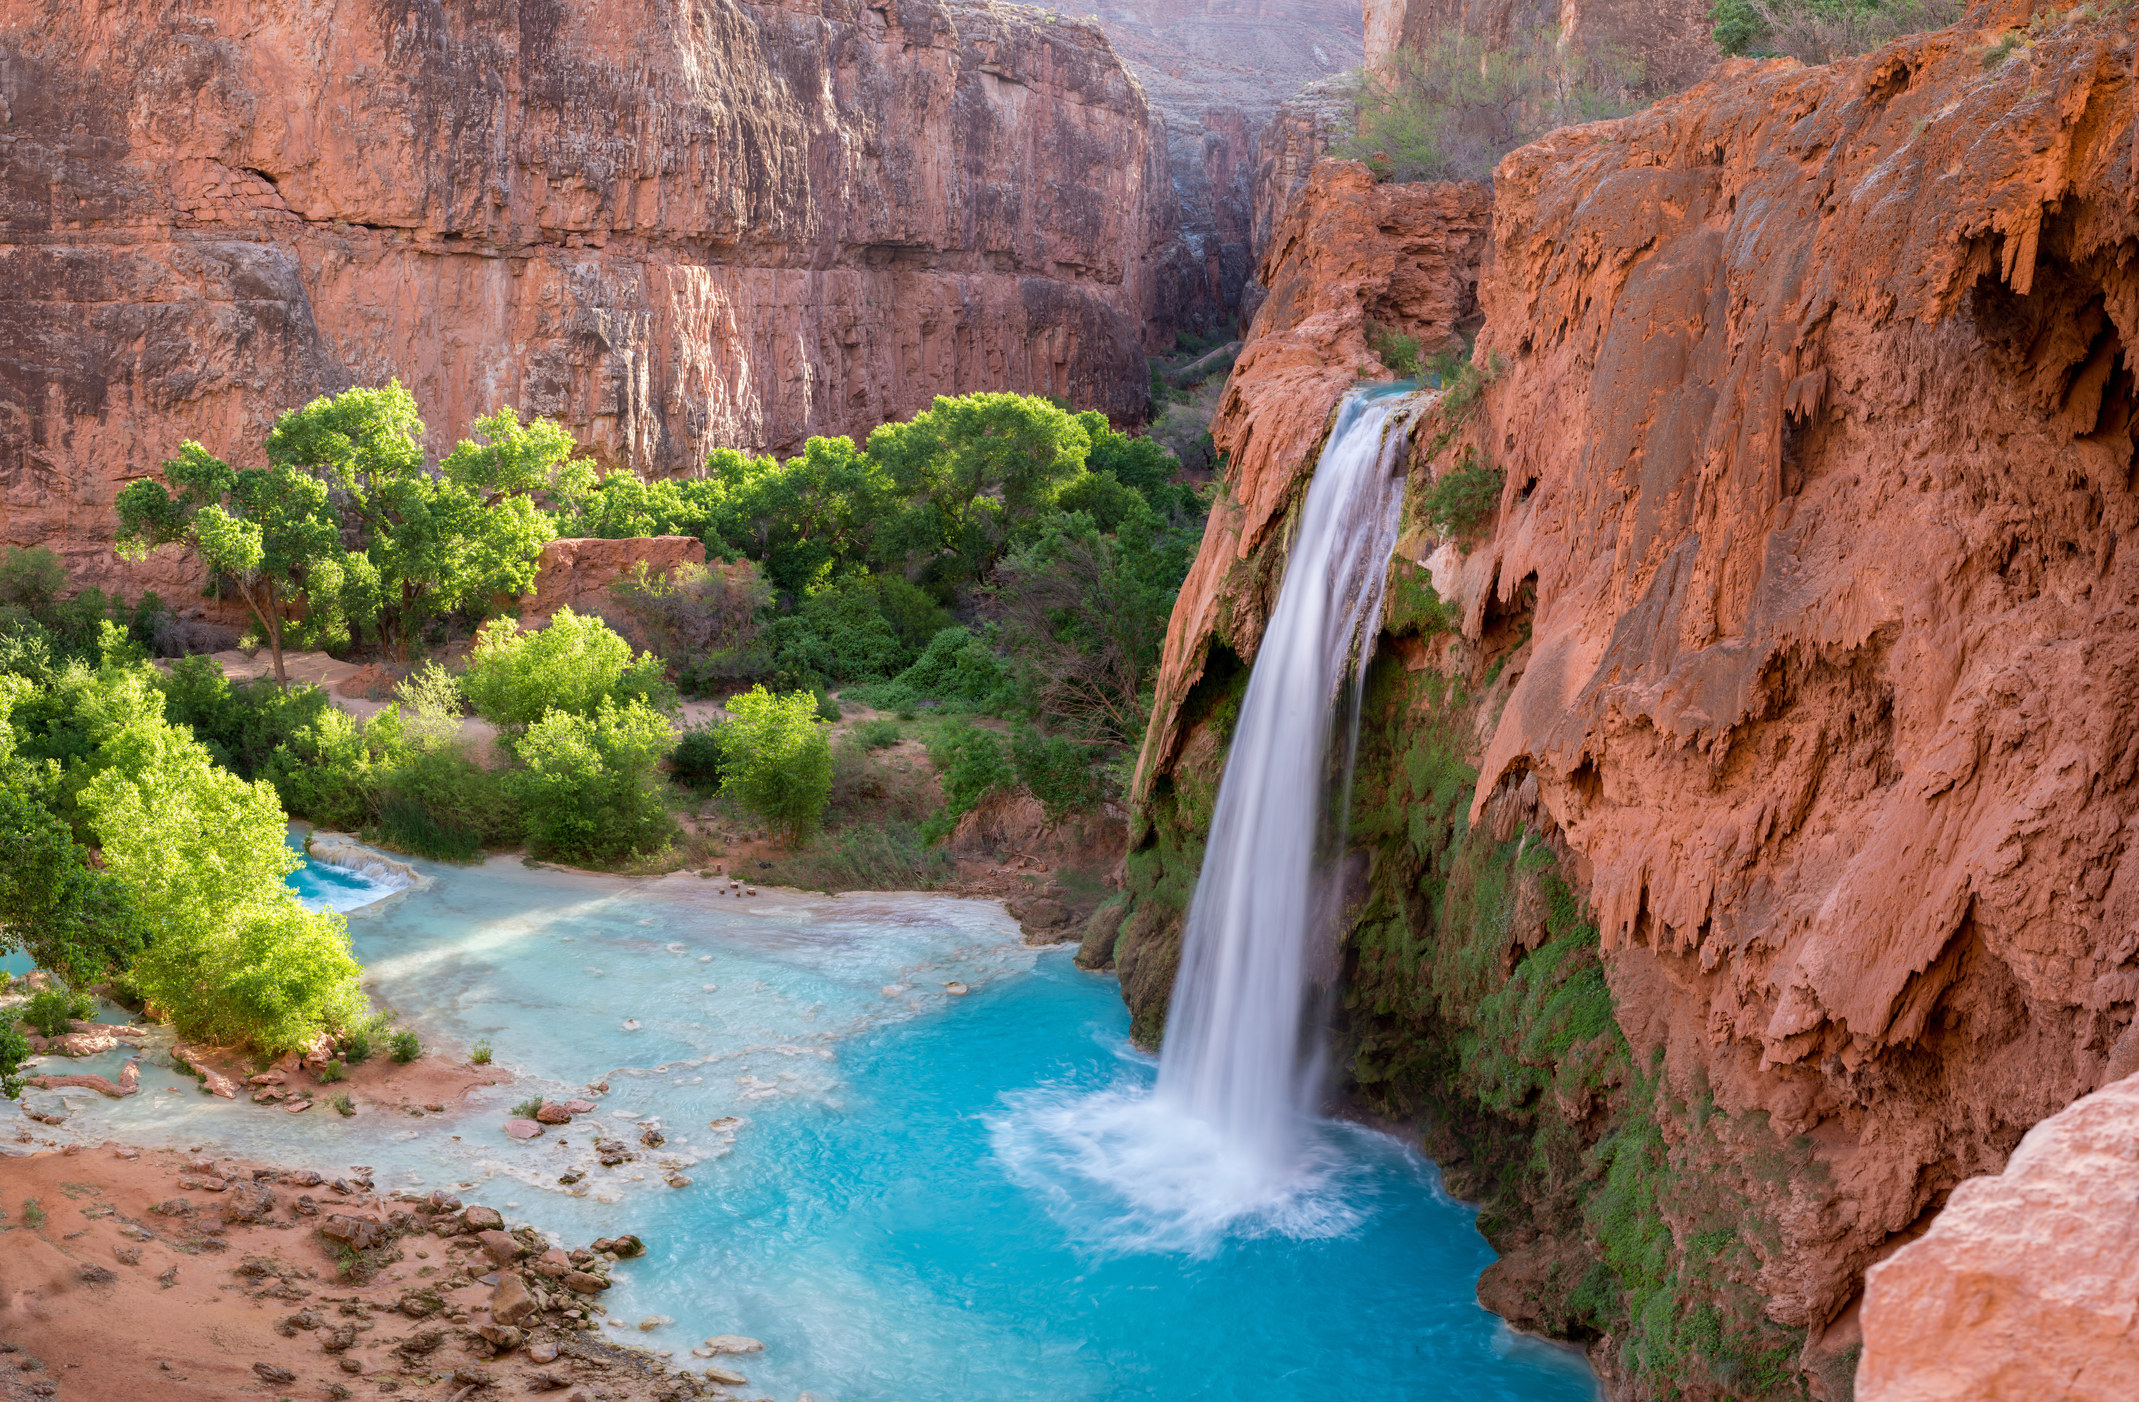 a waterfall flowing over red cliffs into a bright blue pool